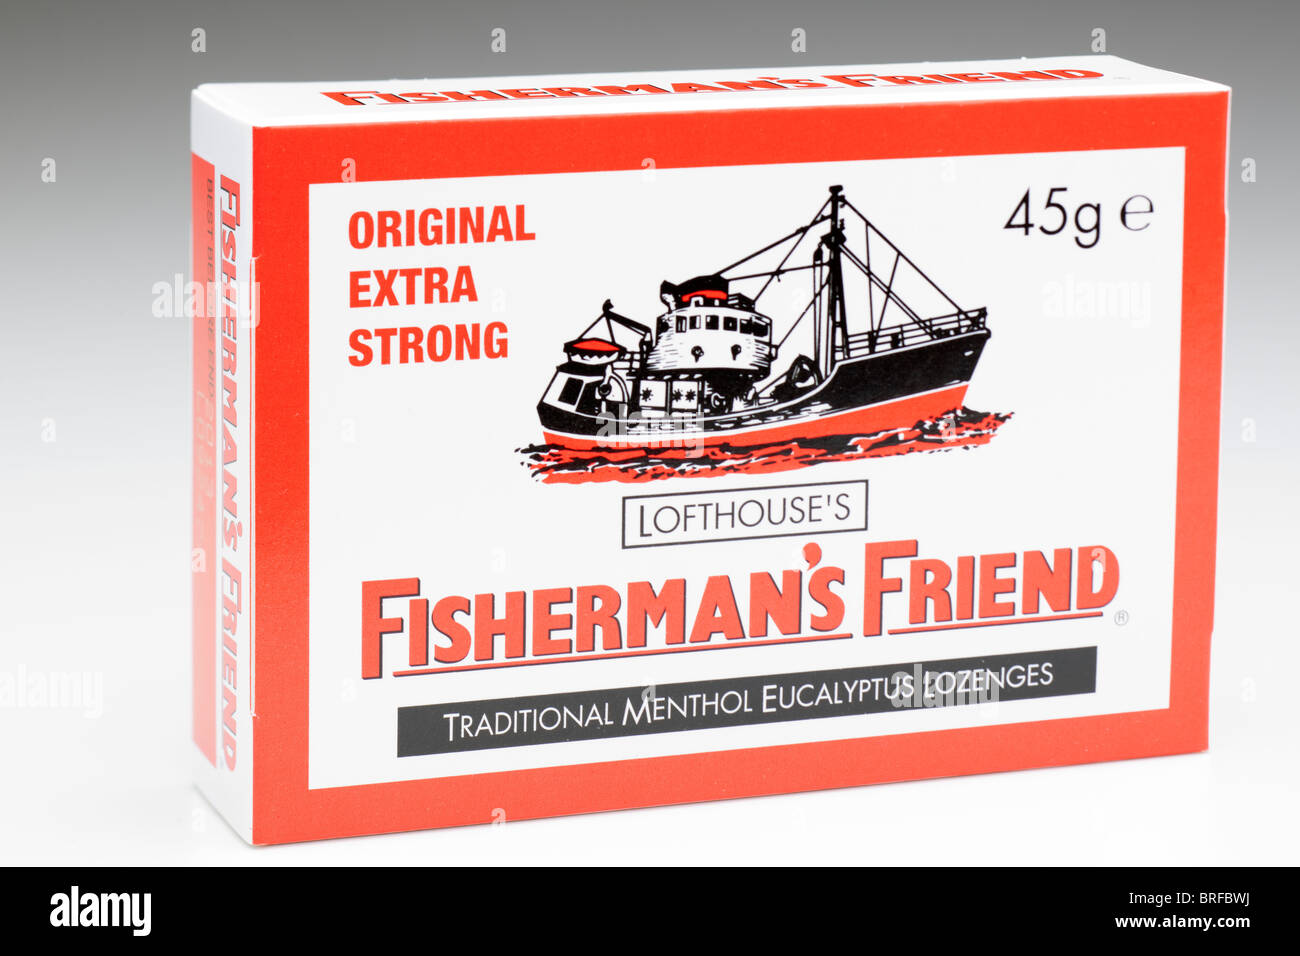 45g box of Lofthouse's original extra strong Fisherman's Friend traditional menthol Eucalyptus Lozenges - Stock Image